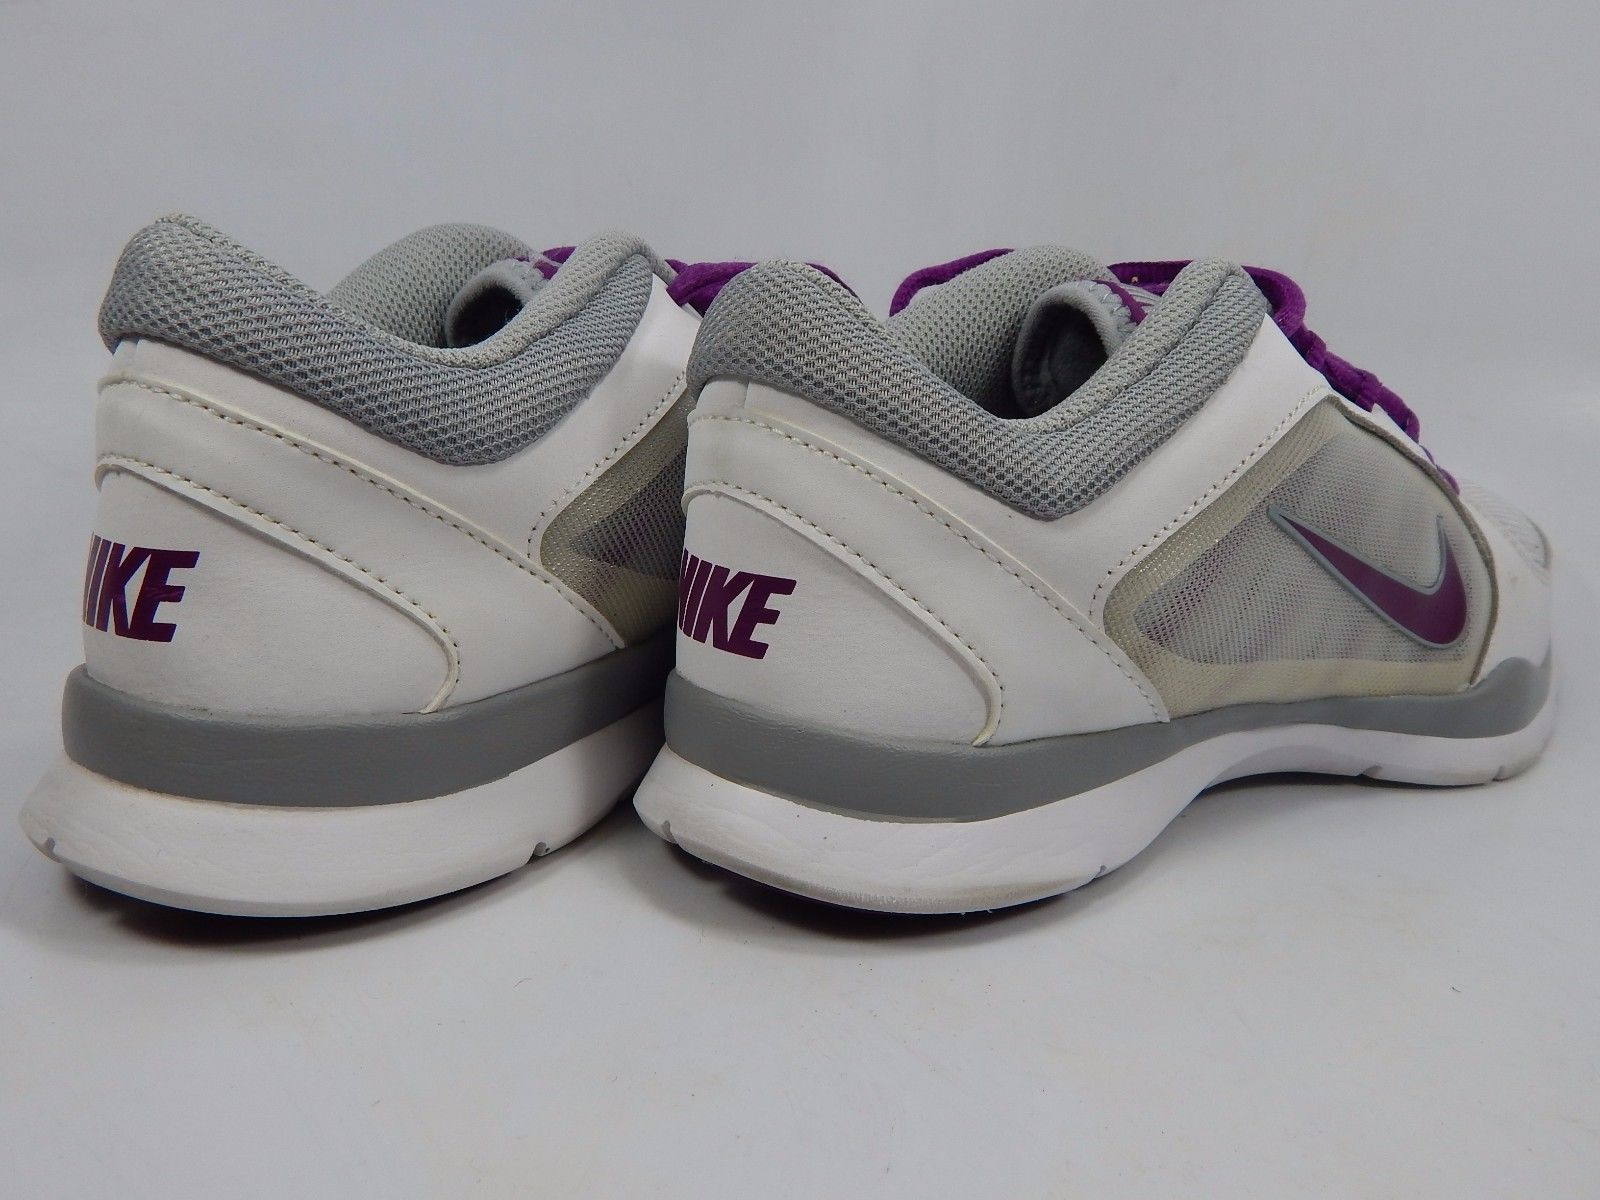 Nike Flex 4 Trainer Women's Training Shoes Sz US 8 M (B) EU 39 White 643083-100